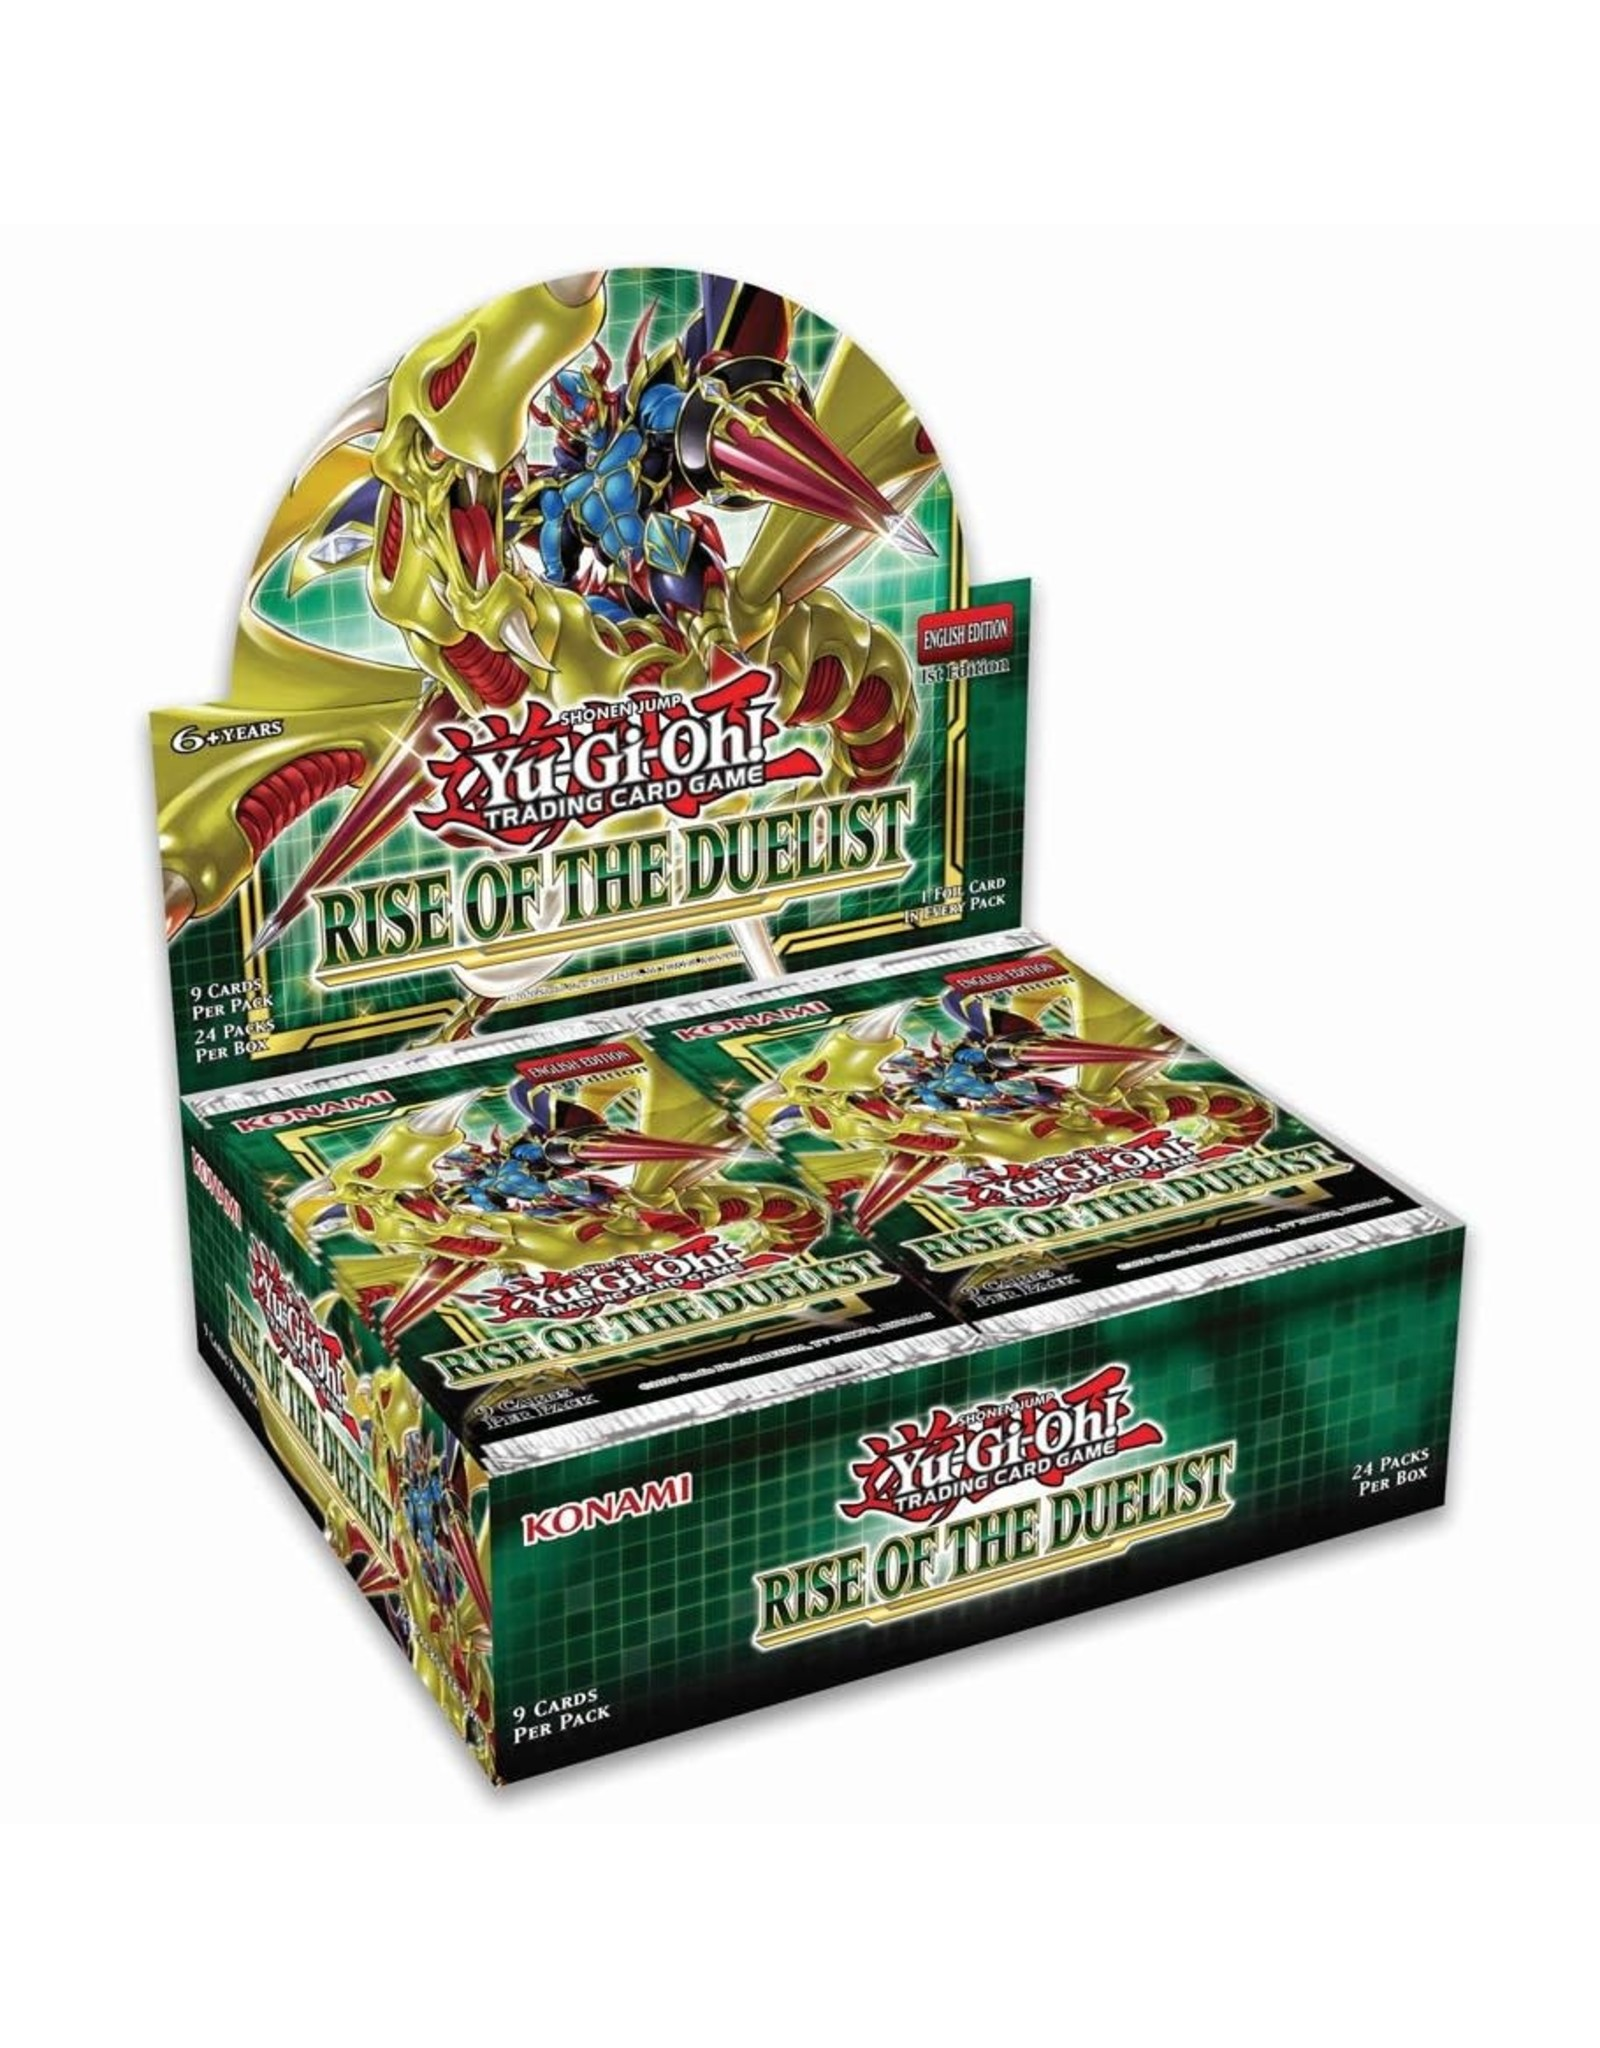 Rise of the Duelist Booster Box - PREORDER, AVAILABLE AUGUST 7, 2020